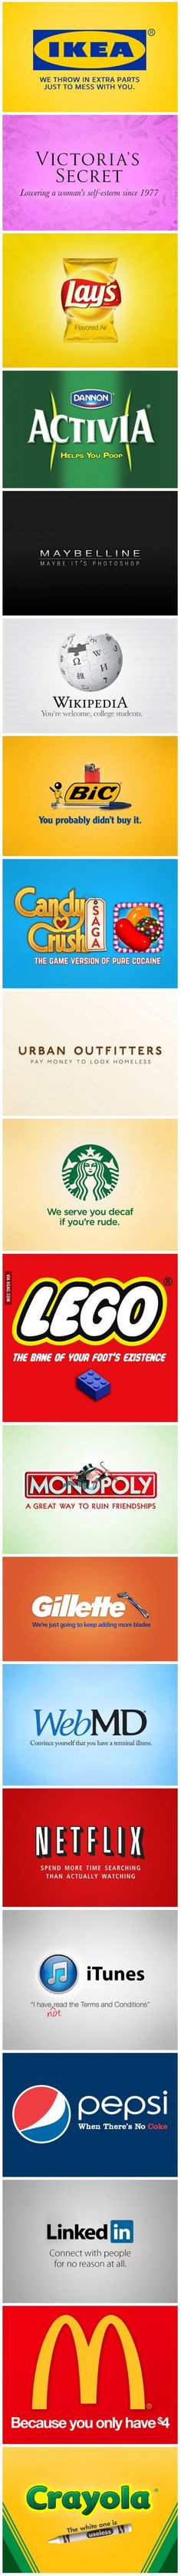 The truth behind famous logos